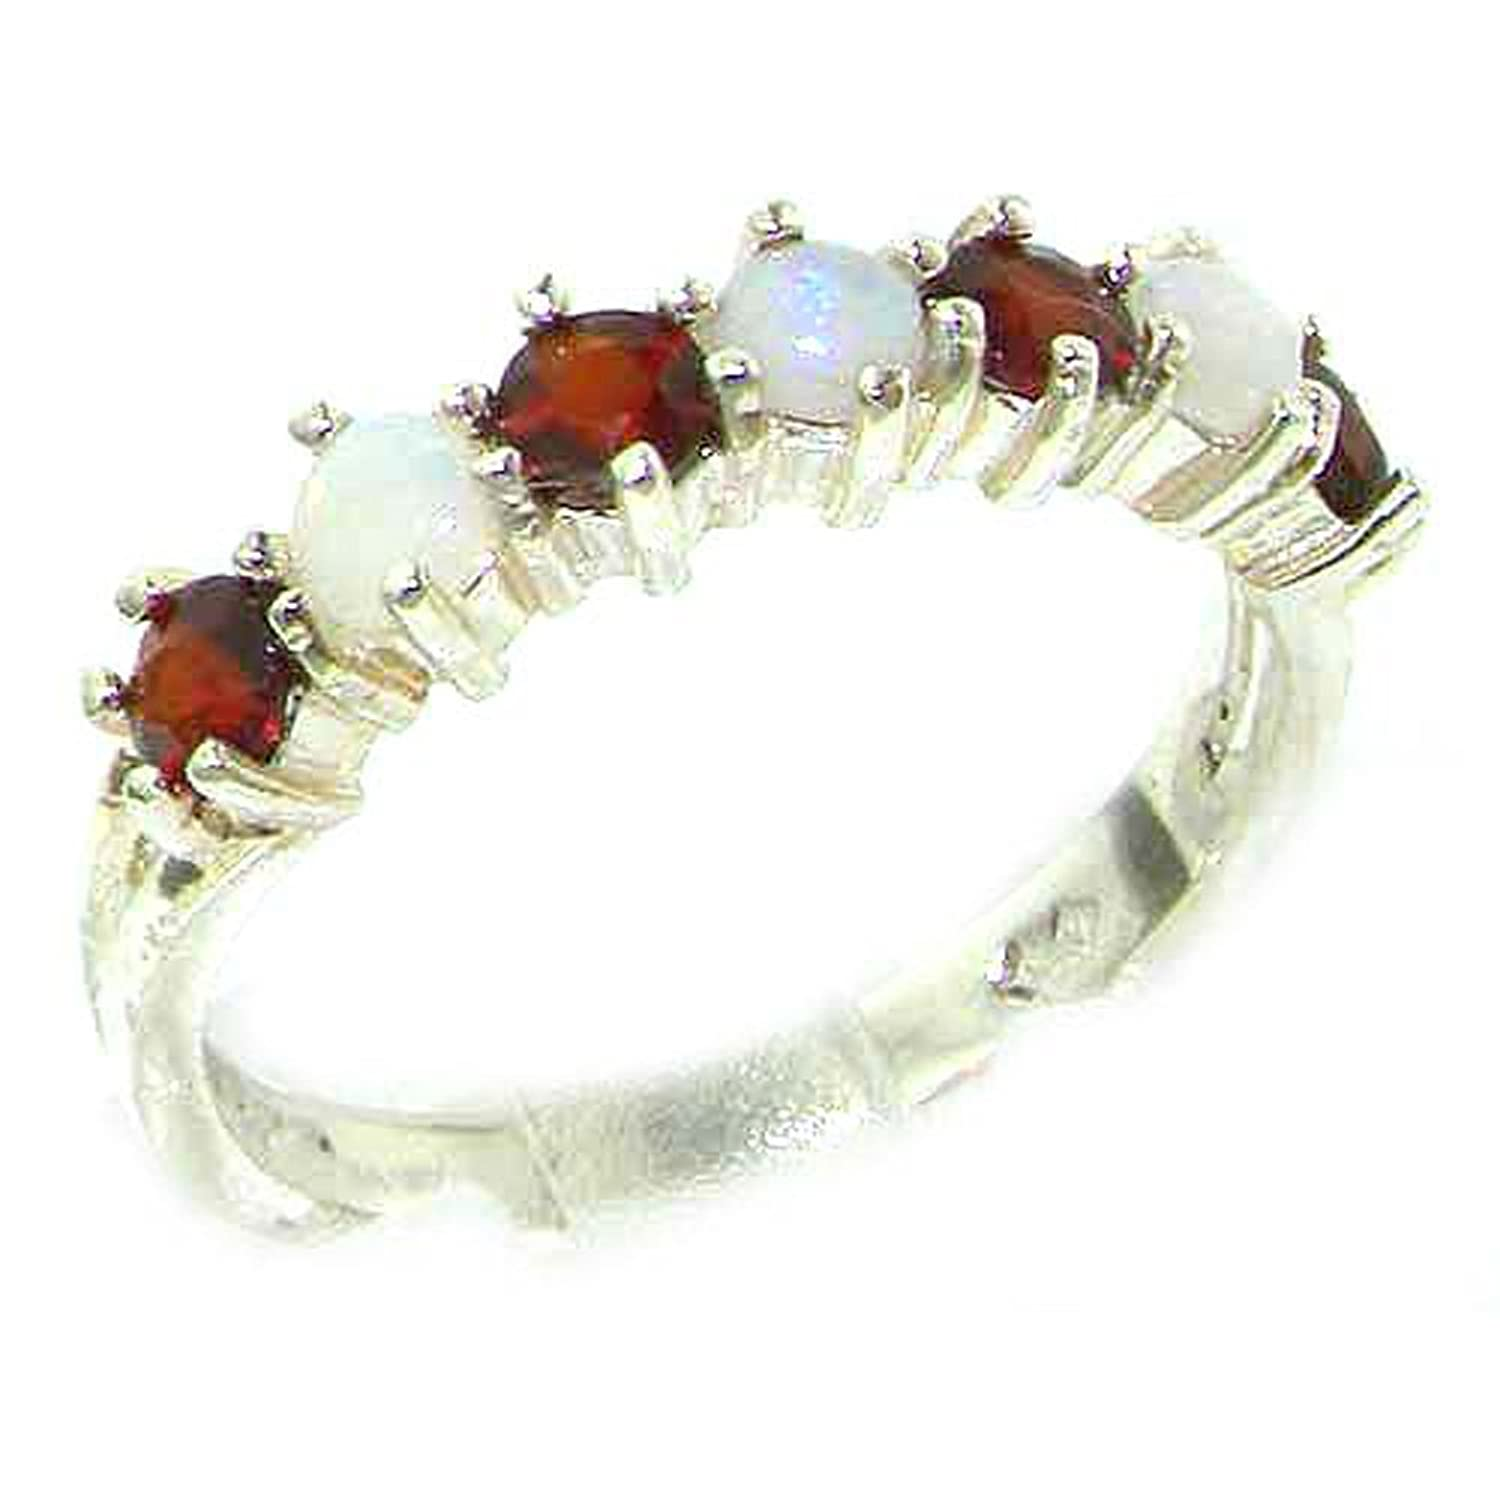 for ring set pin and gorgeous engagement unique diamonds one to two be natural bride rings with on australian side the an elegant a either opal option white timeless